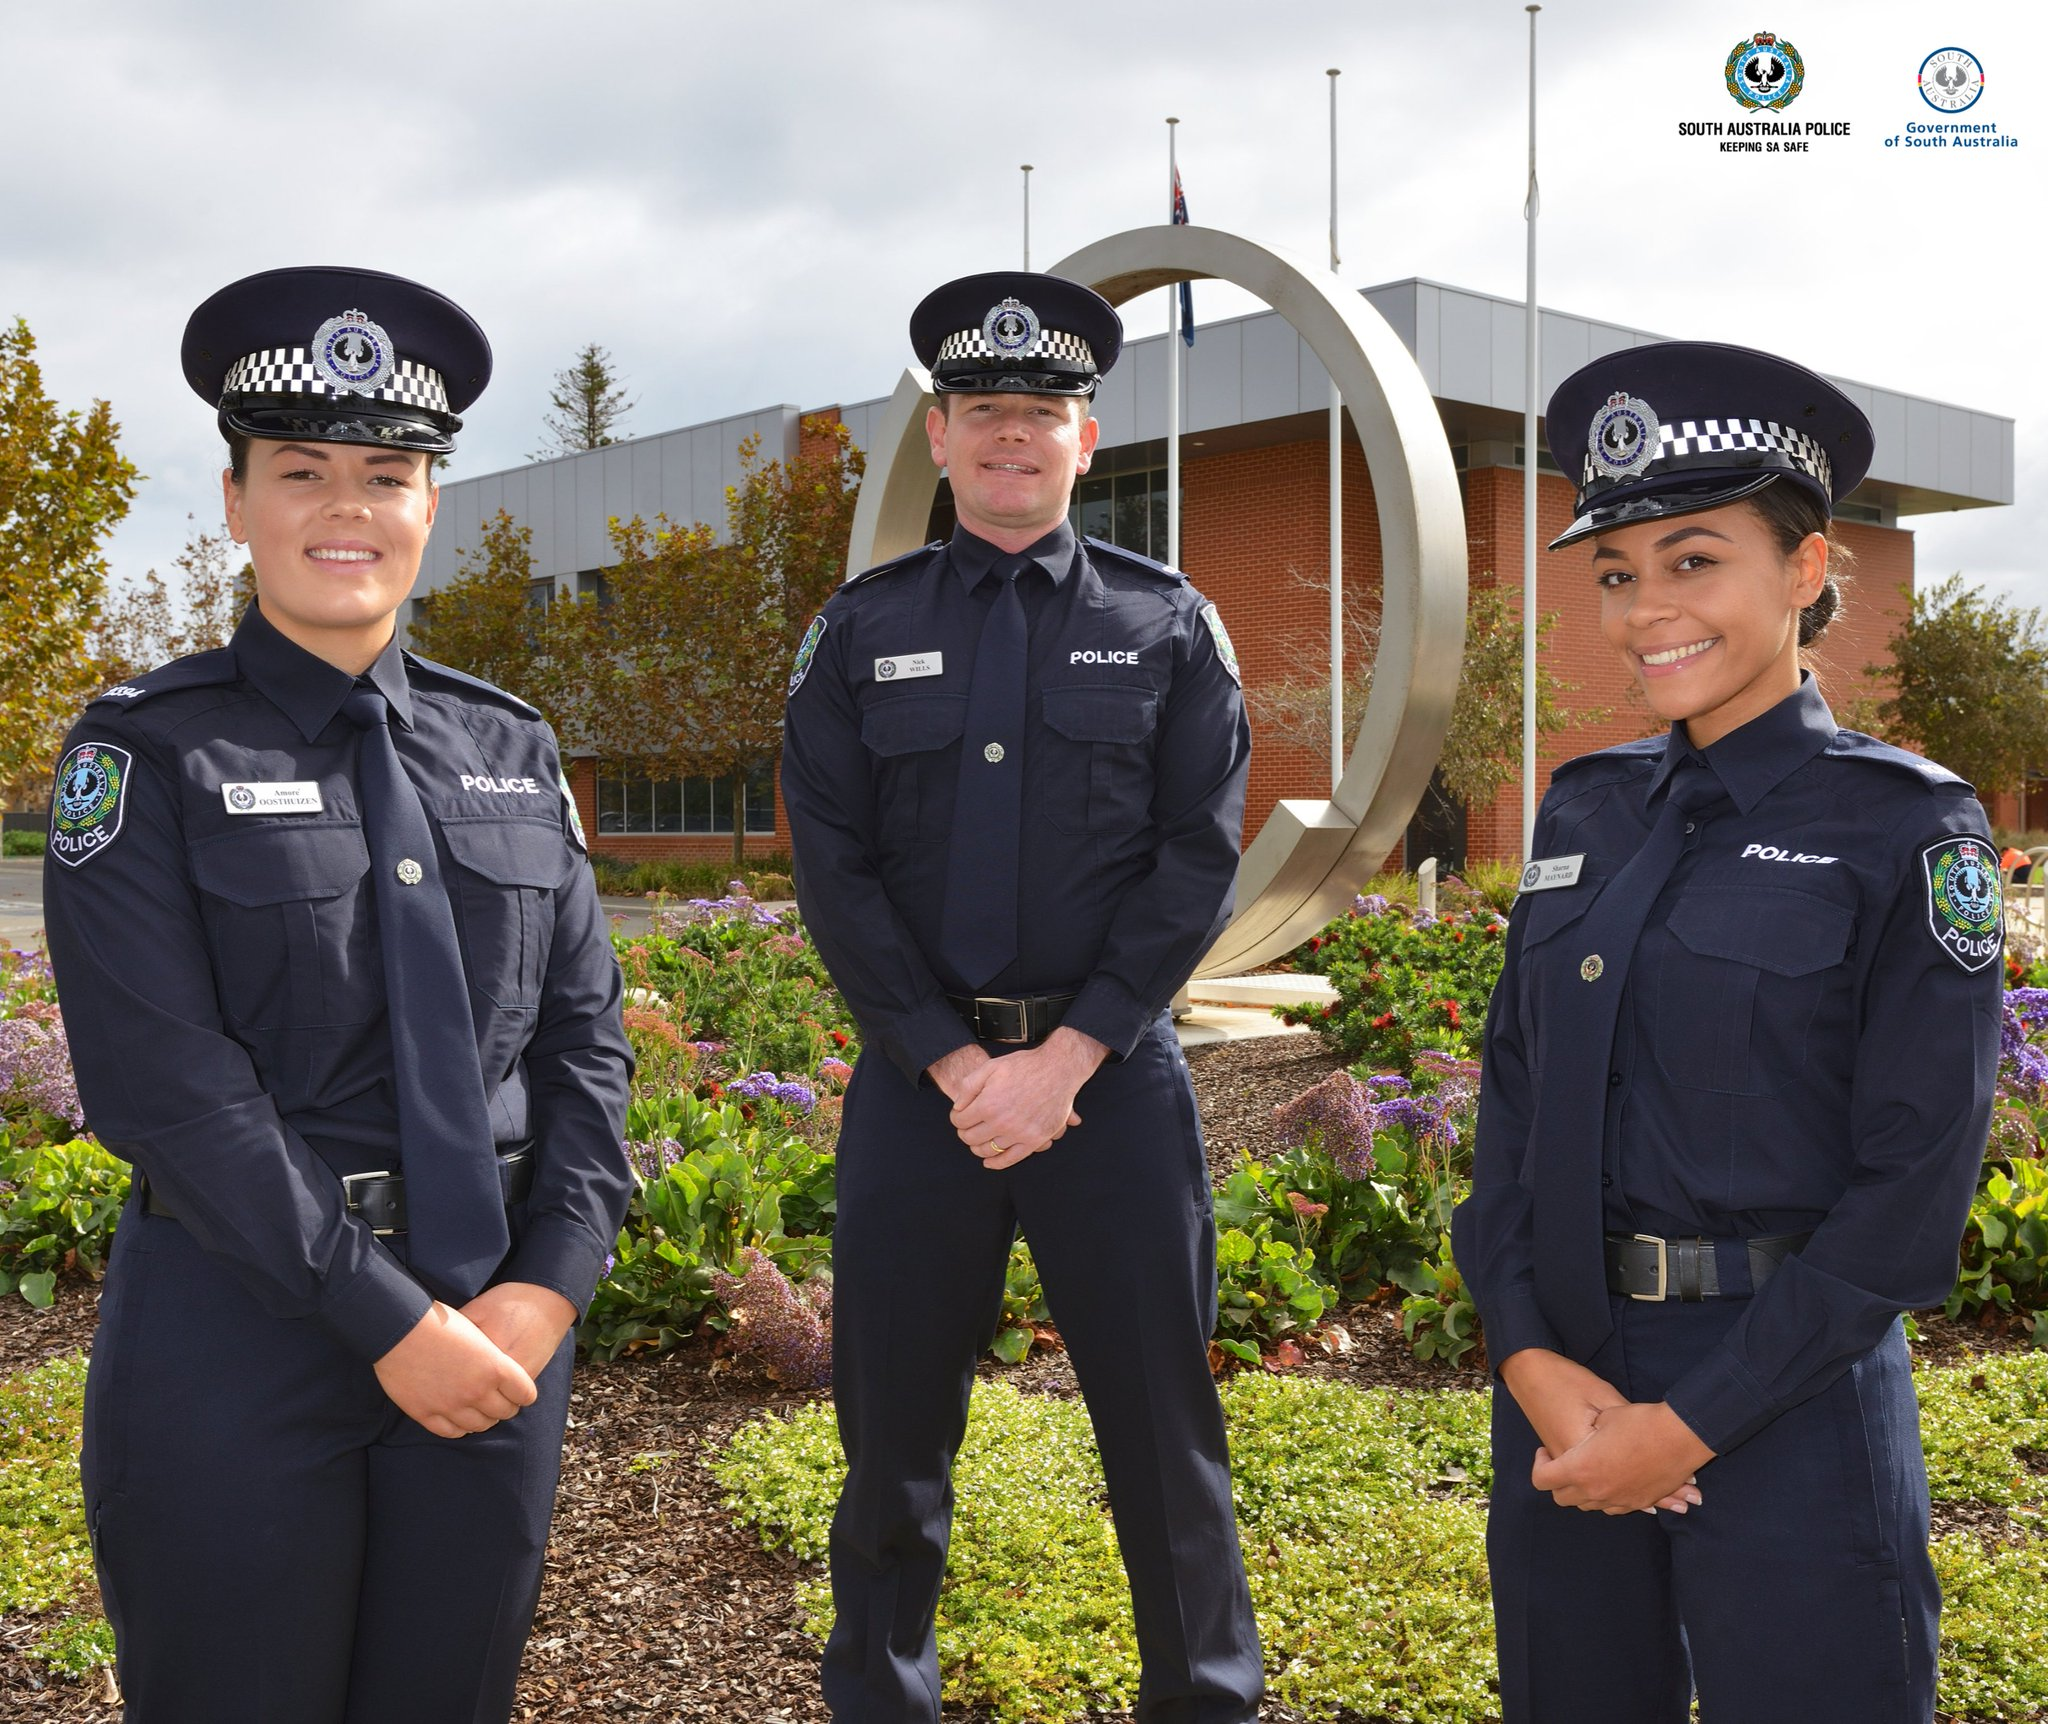 """South Australia Police on Twitter: """"Today, South Australia Police welcomes  26 new Probationary Constables, as Course 42 graduates from the Police  Academy at Taperoo. View the full story here: https://t.co/jz75qVEb5F…  https://t.co/NsjQdWH1wx"""""""